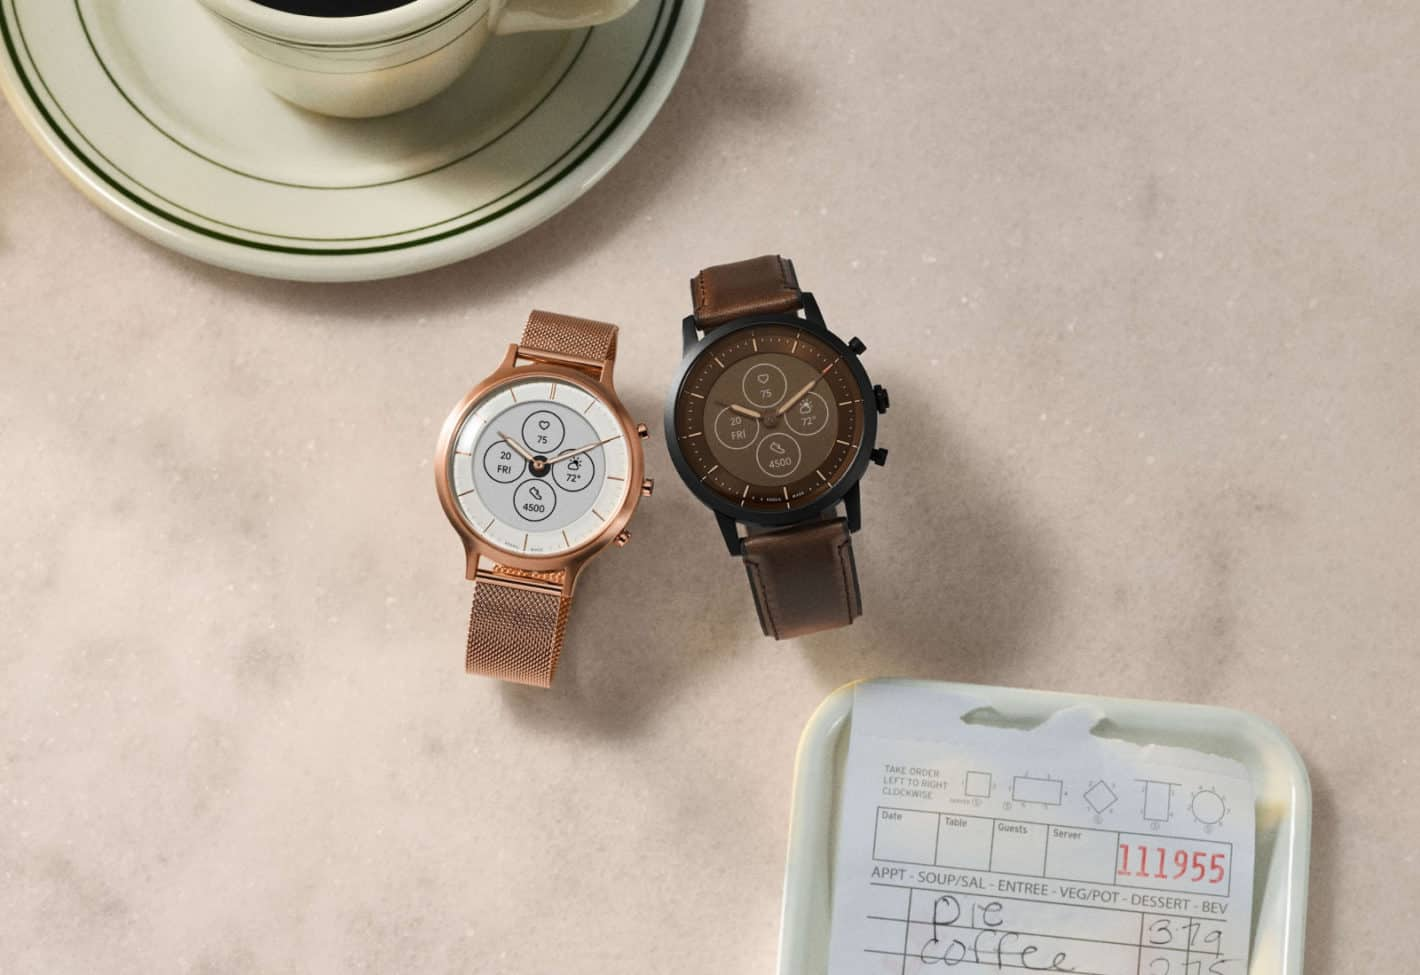 Fossil Launches Hybrid Smartwatch With Over 2-Week Battery